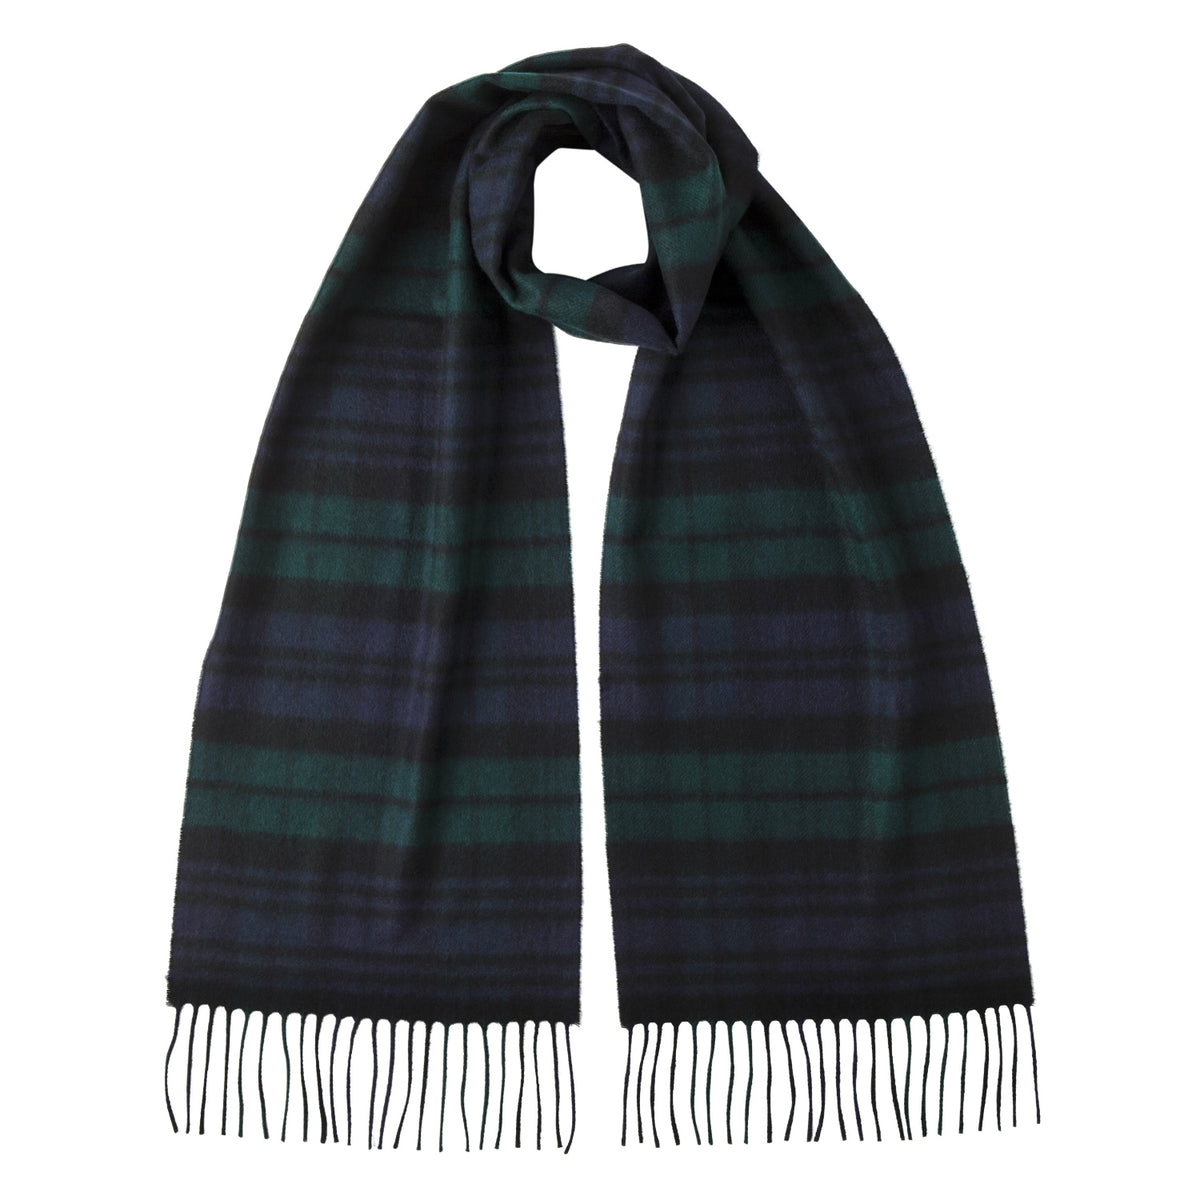 Johnsons of Elgin | Black Watch Tartan Check Cashmere Scarf | buy at The Cashmere Choice | London